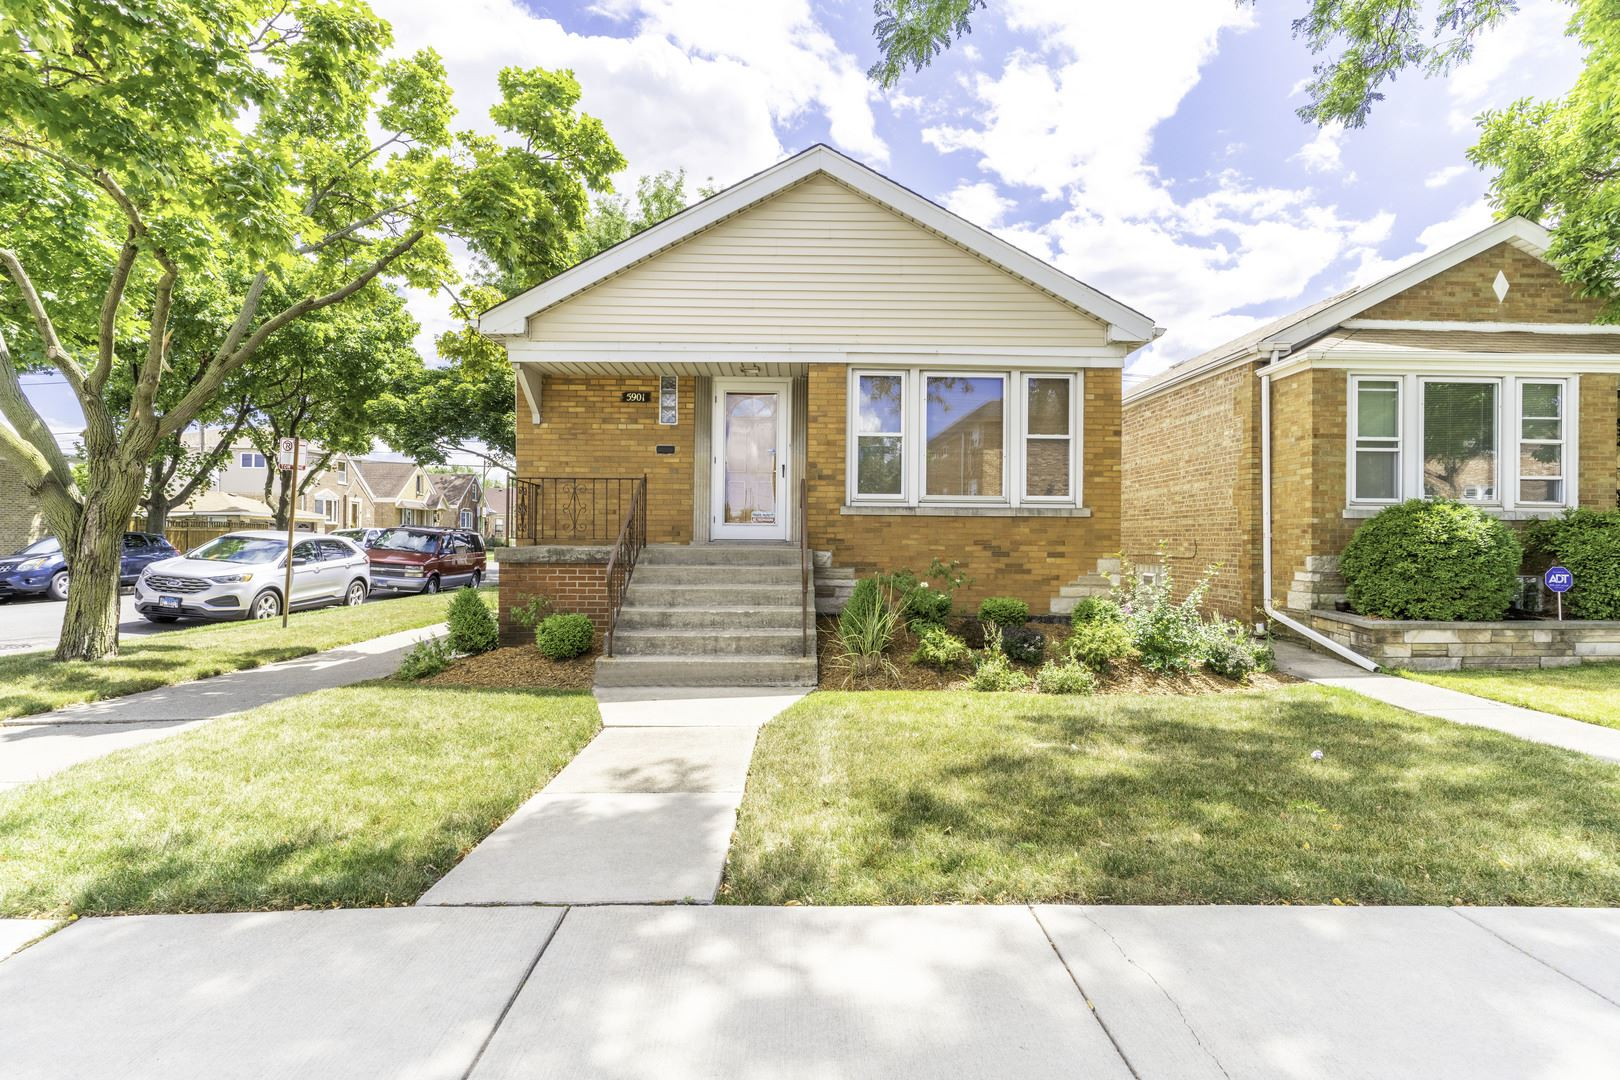 5901 W 55th Street, Chicago, IL 60638 - #: 10808063